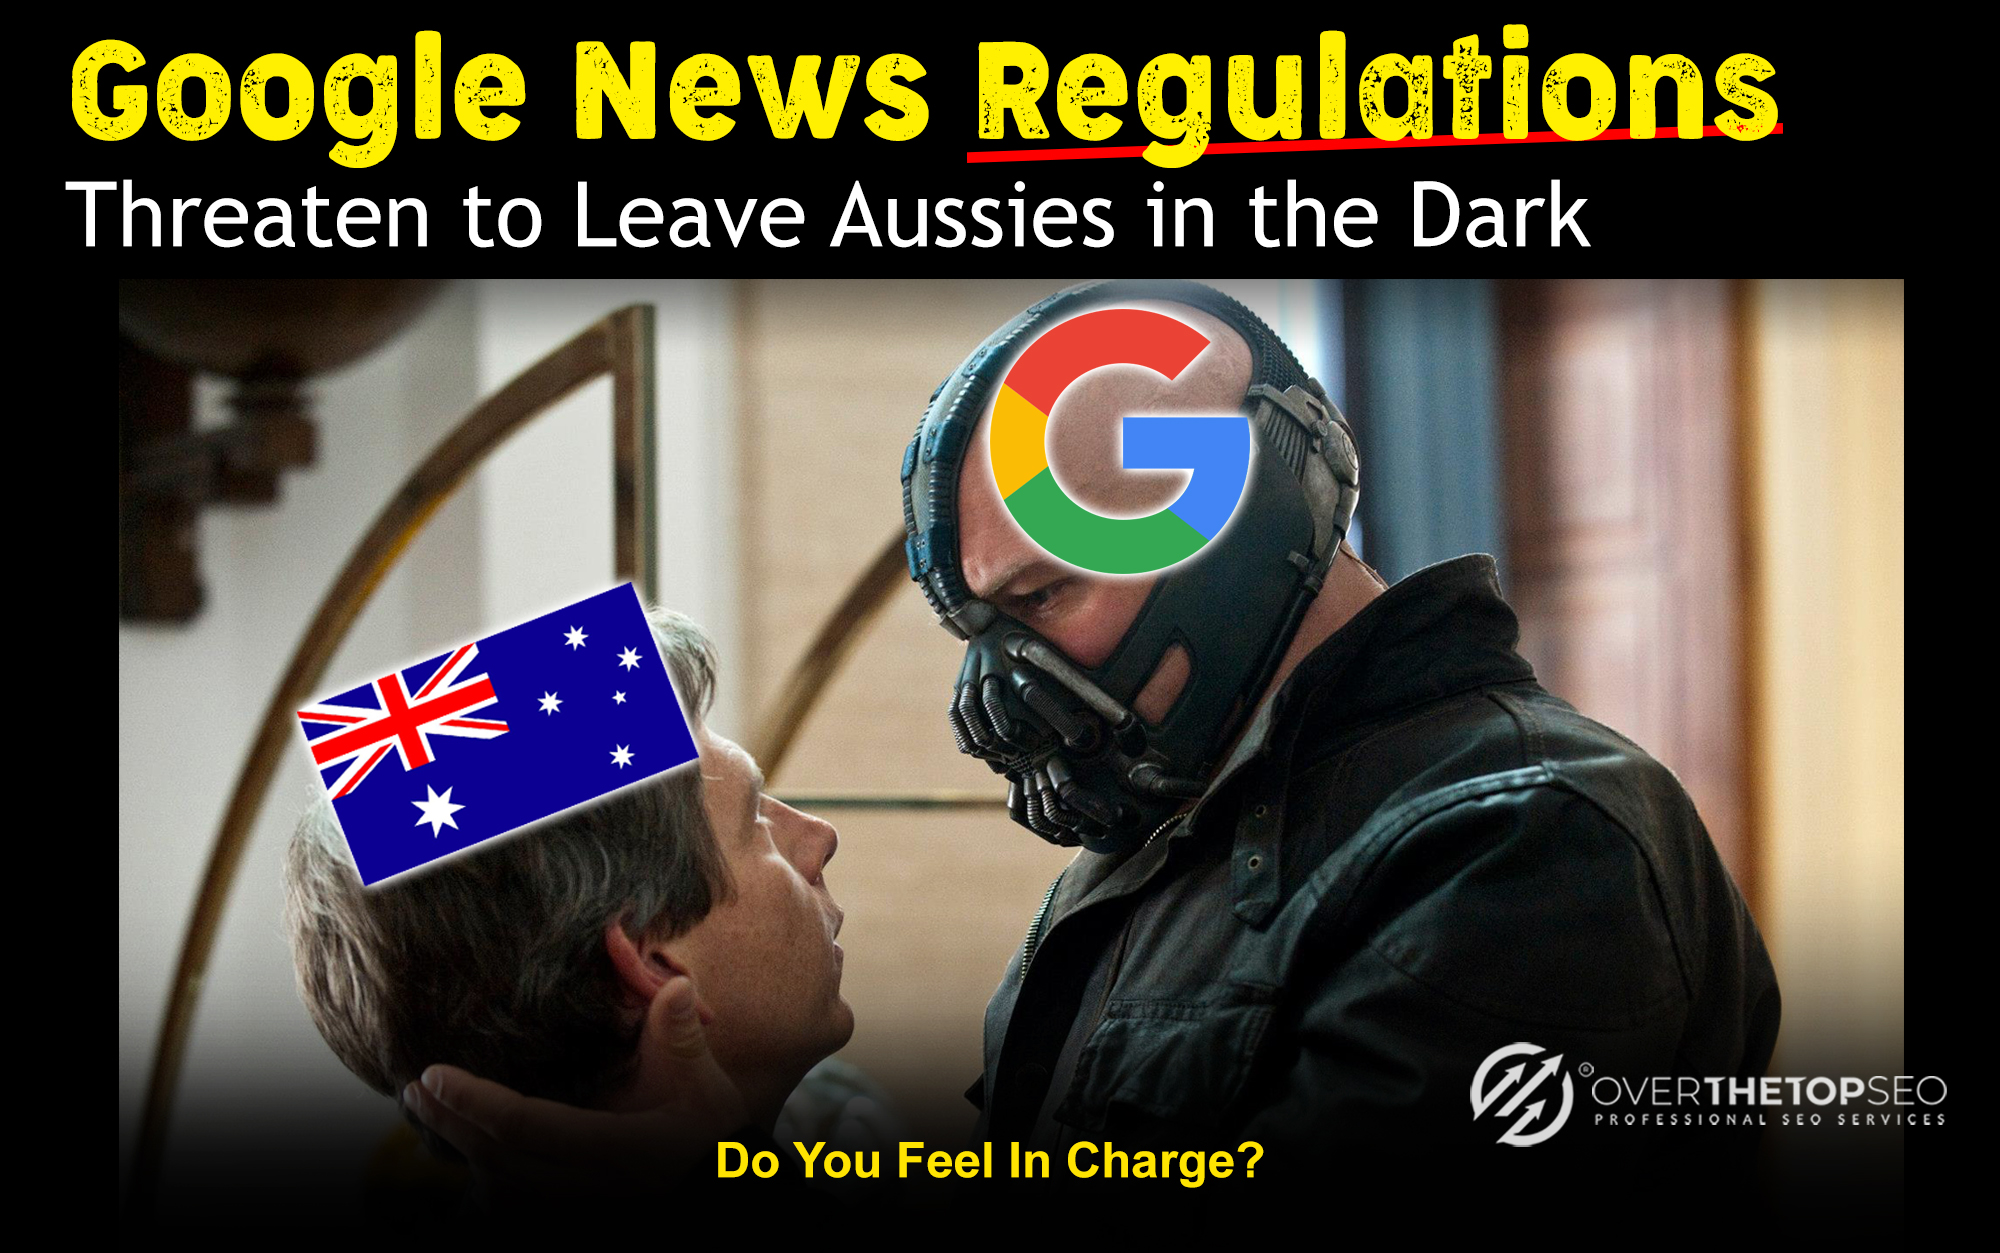 Google News Regulations Threaten to Leave Aussies in the Dark